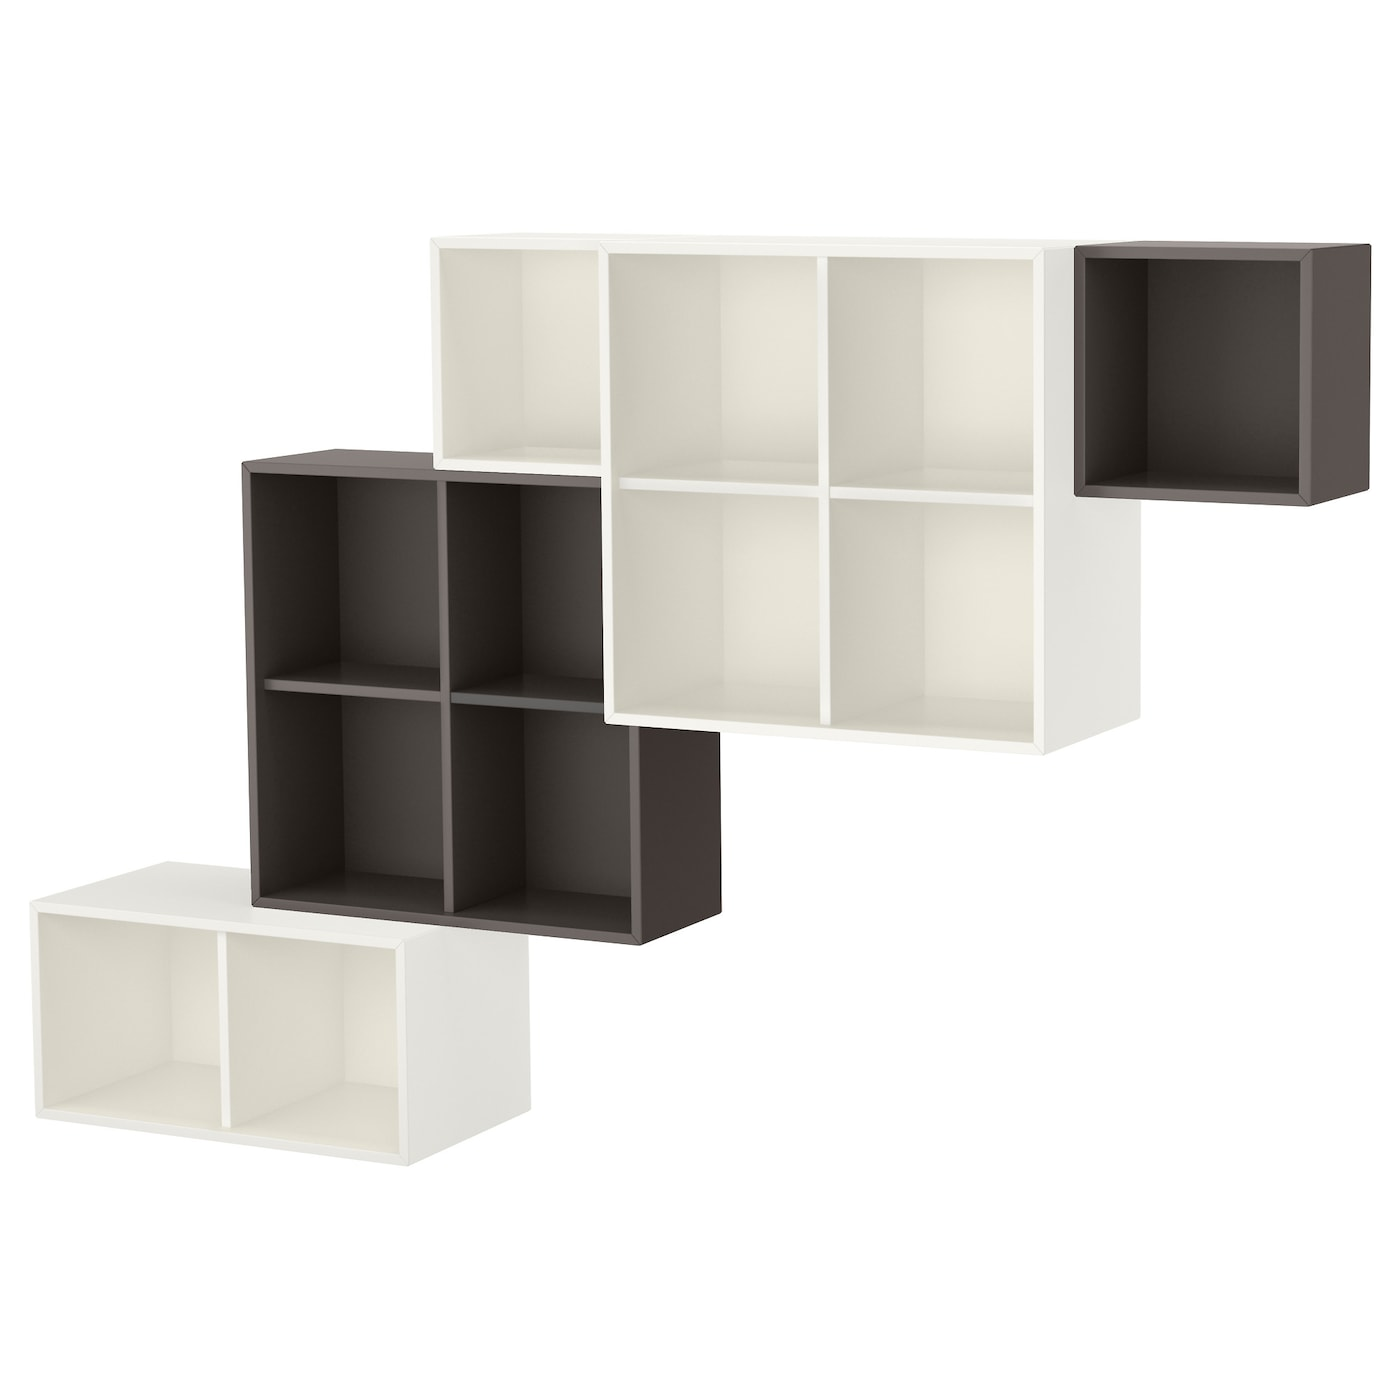 eket kastencombinatie voor wandmontage wit donkergrijs 210 x 35 x 140 cm ikea. Black Bedroom Furniture Sets. Home Design Ideas